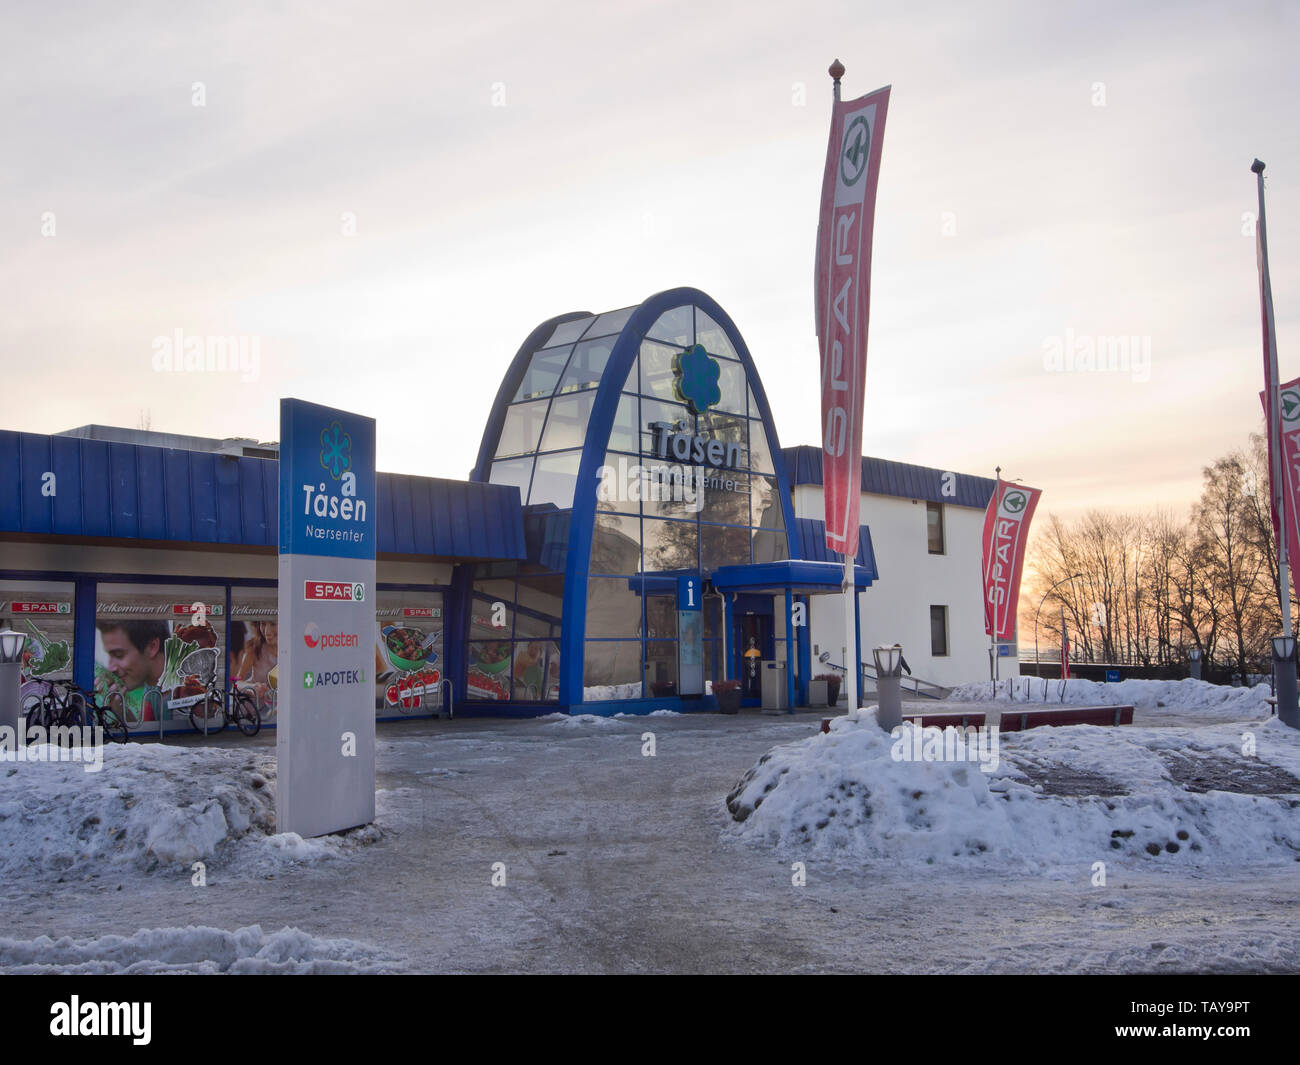 79bb60187 Winter Oslo Stock Photos & Winter Oslo Stock Images - Alamy